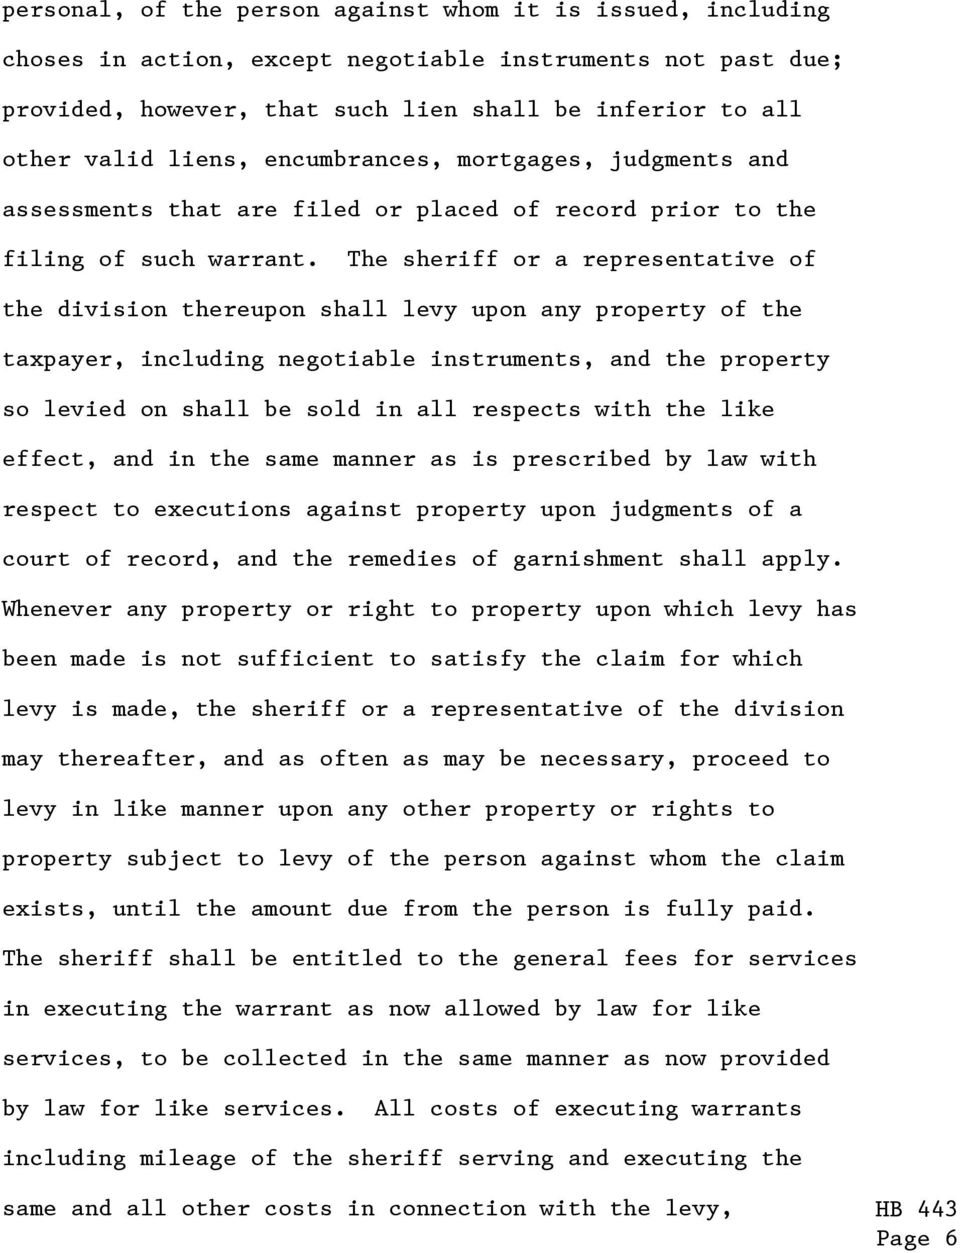 The sheriff or a representative of the division thereupon shall levy upon any property of the taxpayer, including negotiable instruments, and the property so levied on shall be sold in all respects